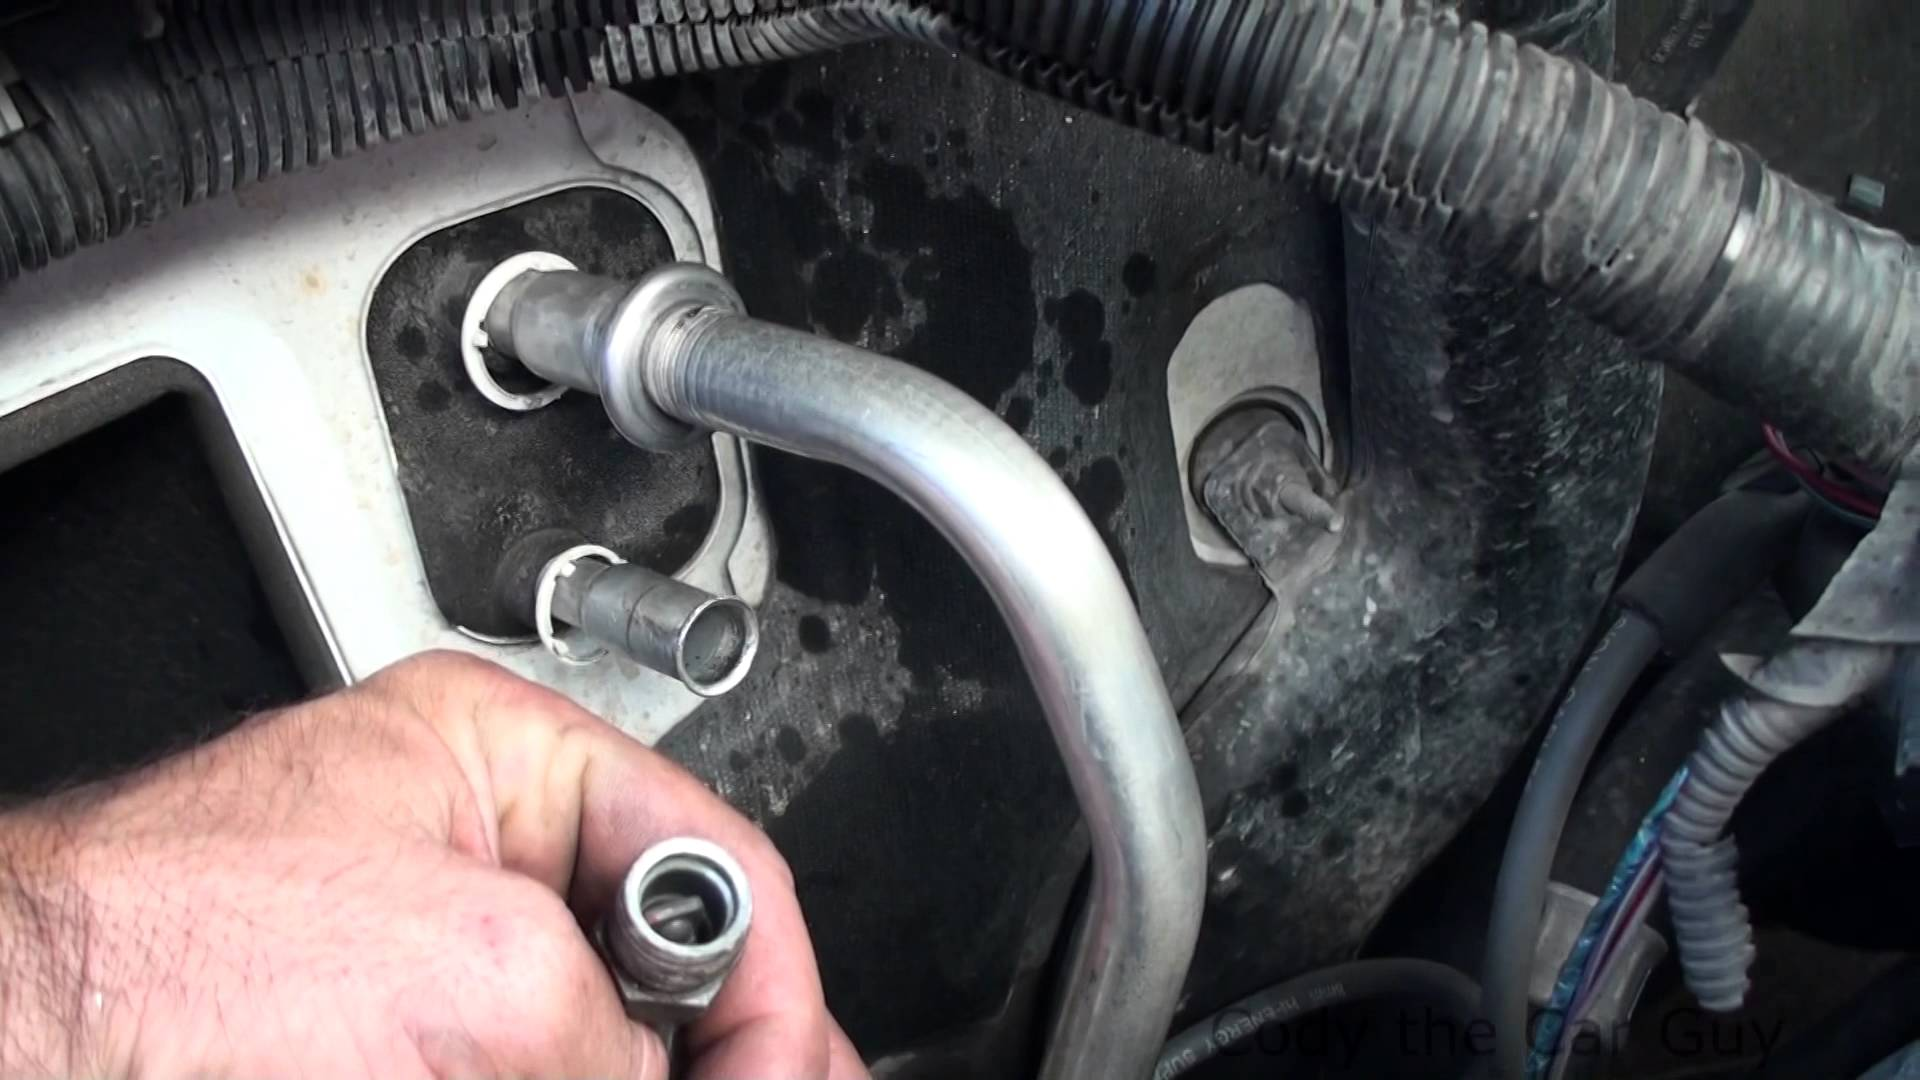 & Car Air Conditioning Repair: 5 Reasons Why Your Vehicleu0027s AC Leaks Water